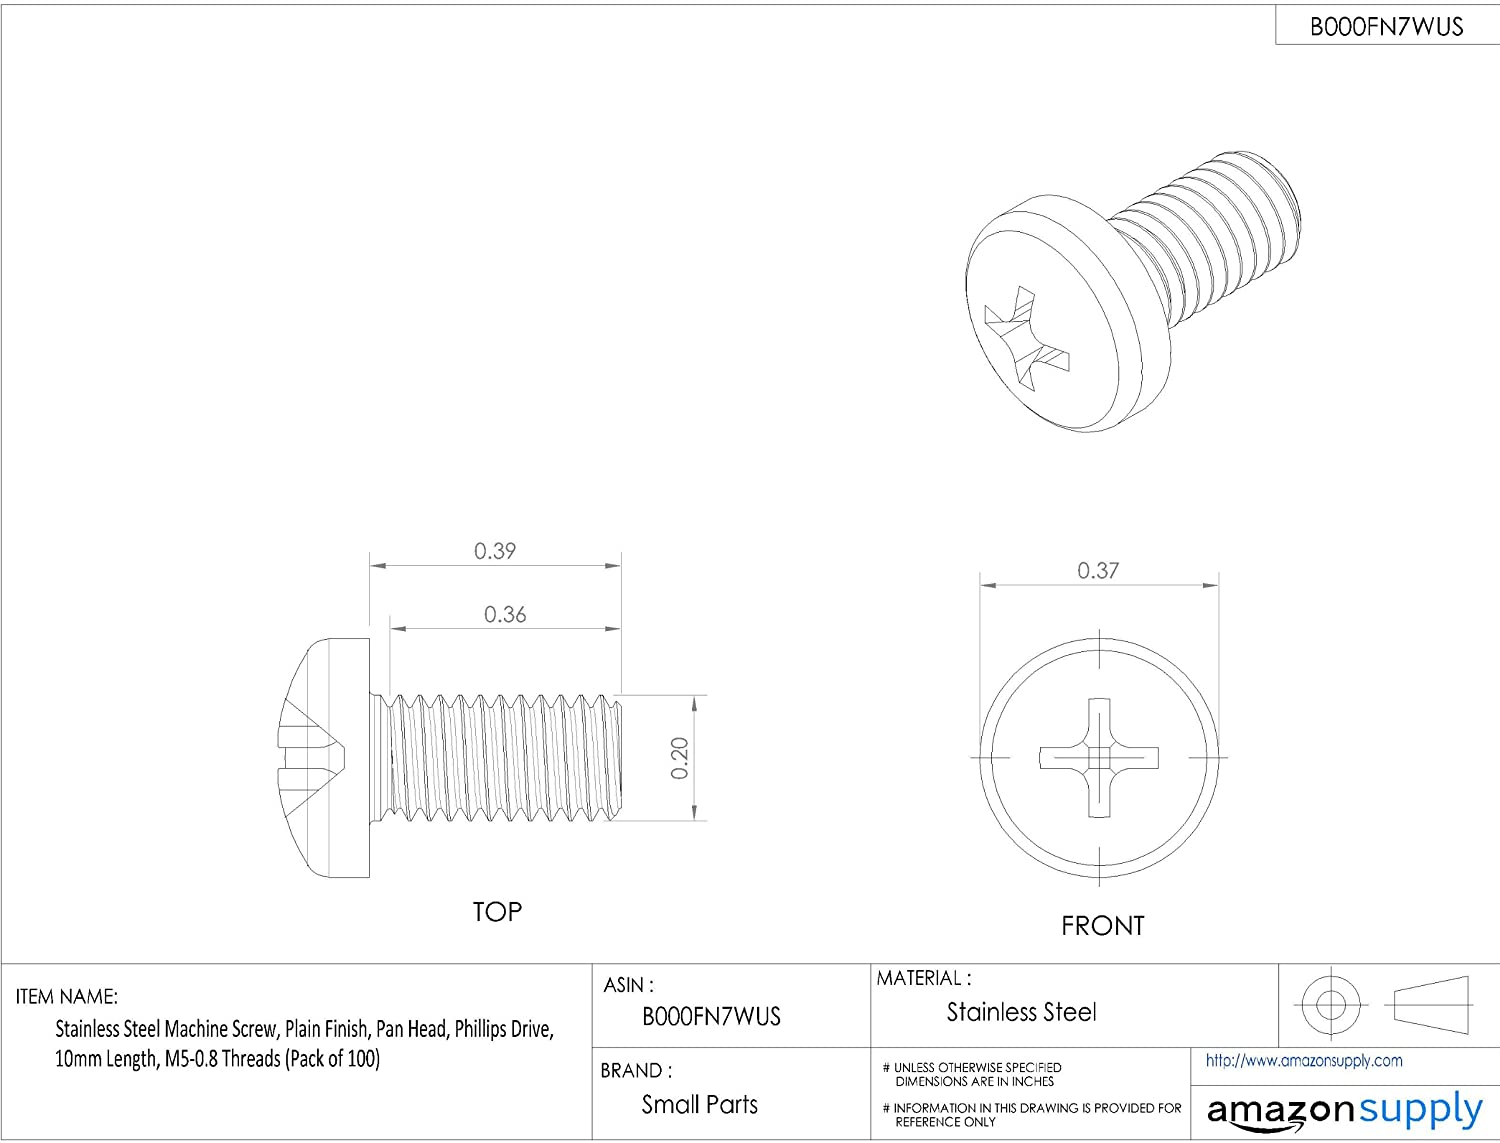 Pack of 100 Pan Head Plain Finish Stainless Steel Machine Screw 10mm Length M5-0.8 Metric Coarse Threads Phillips Drive